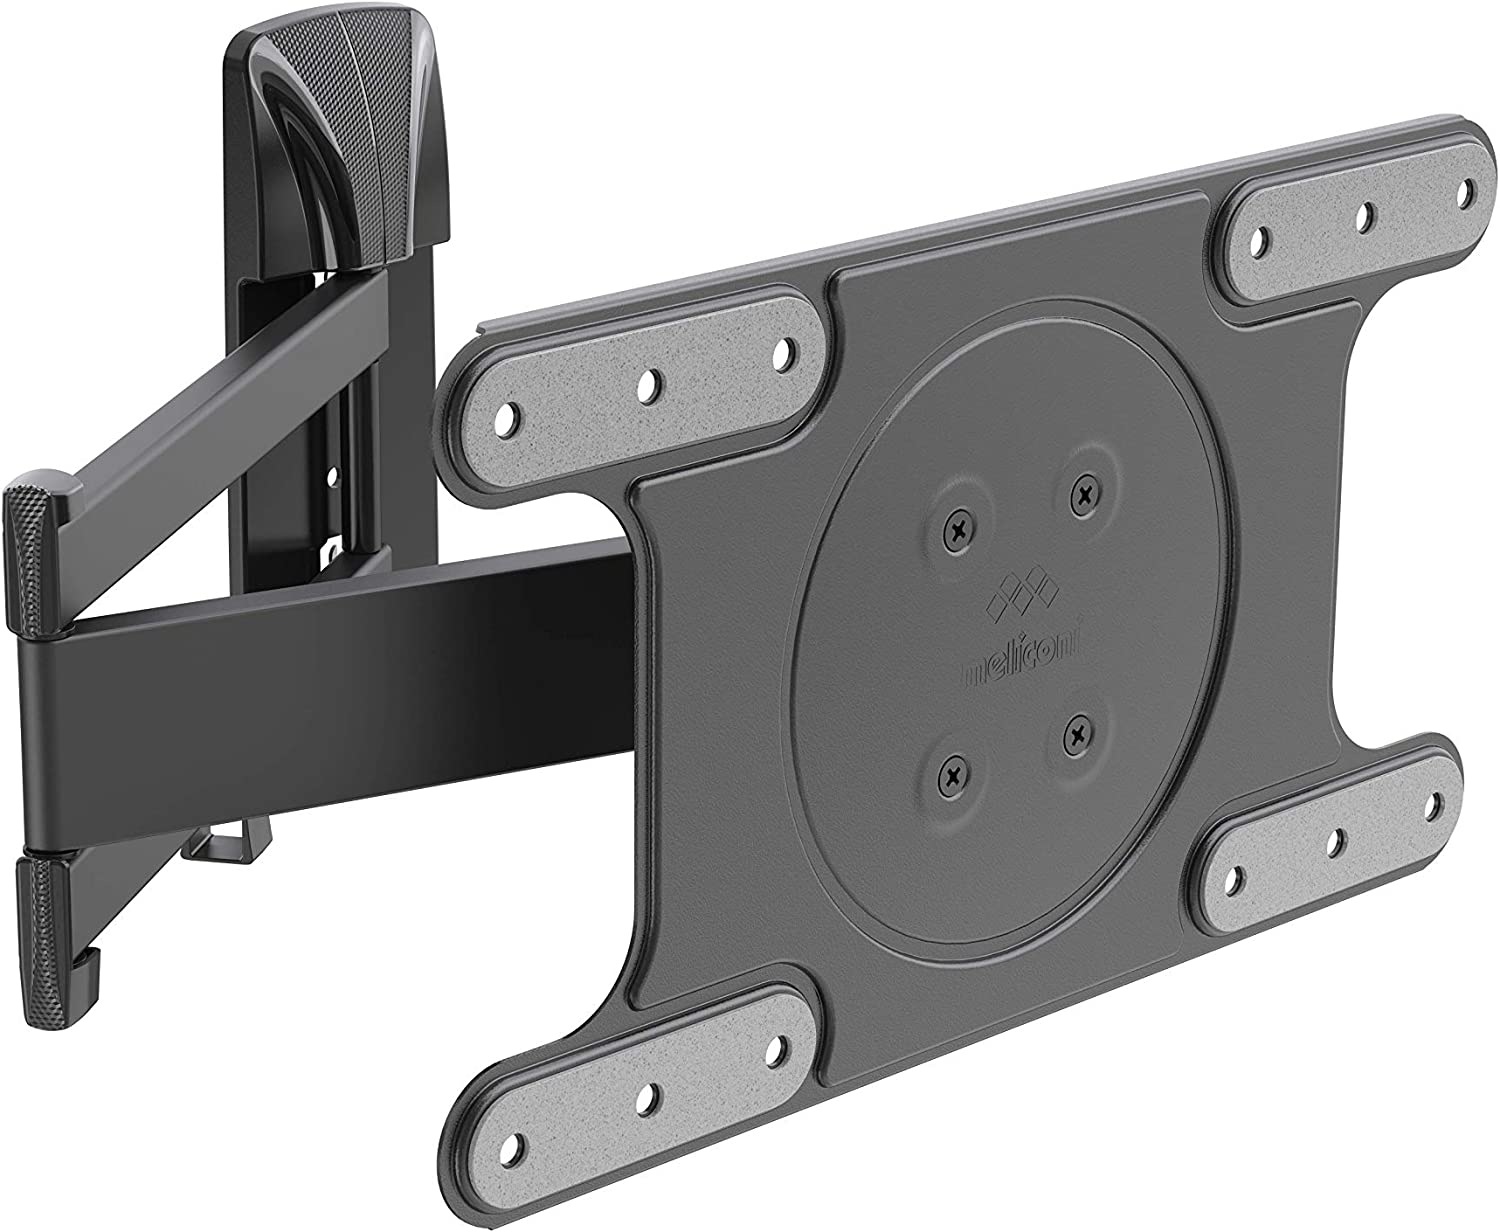 Meliconi OLED TV Double Stand arm famous Max 63% OFF